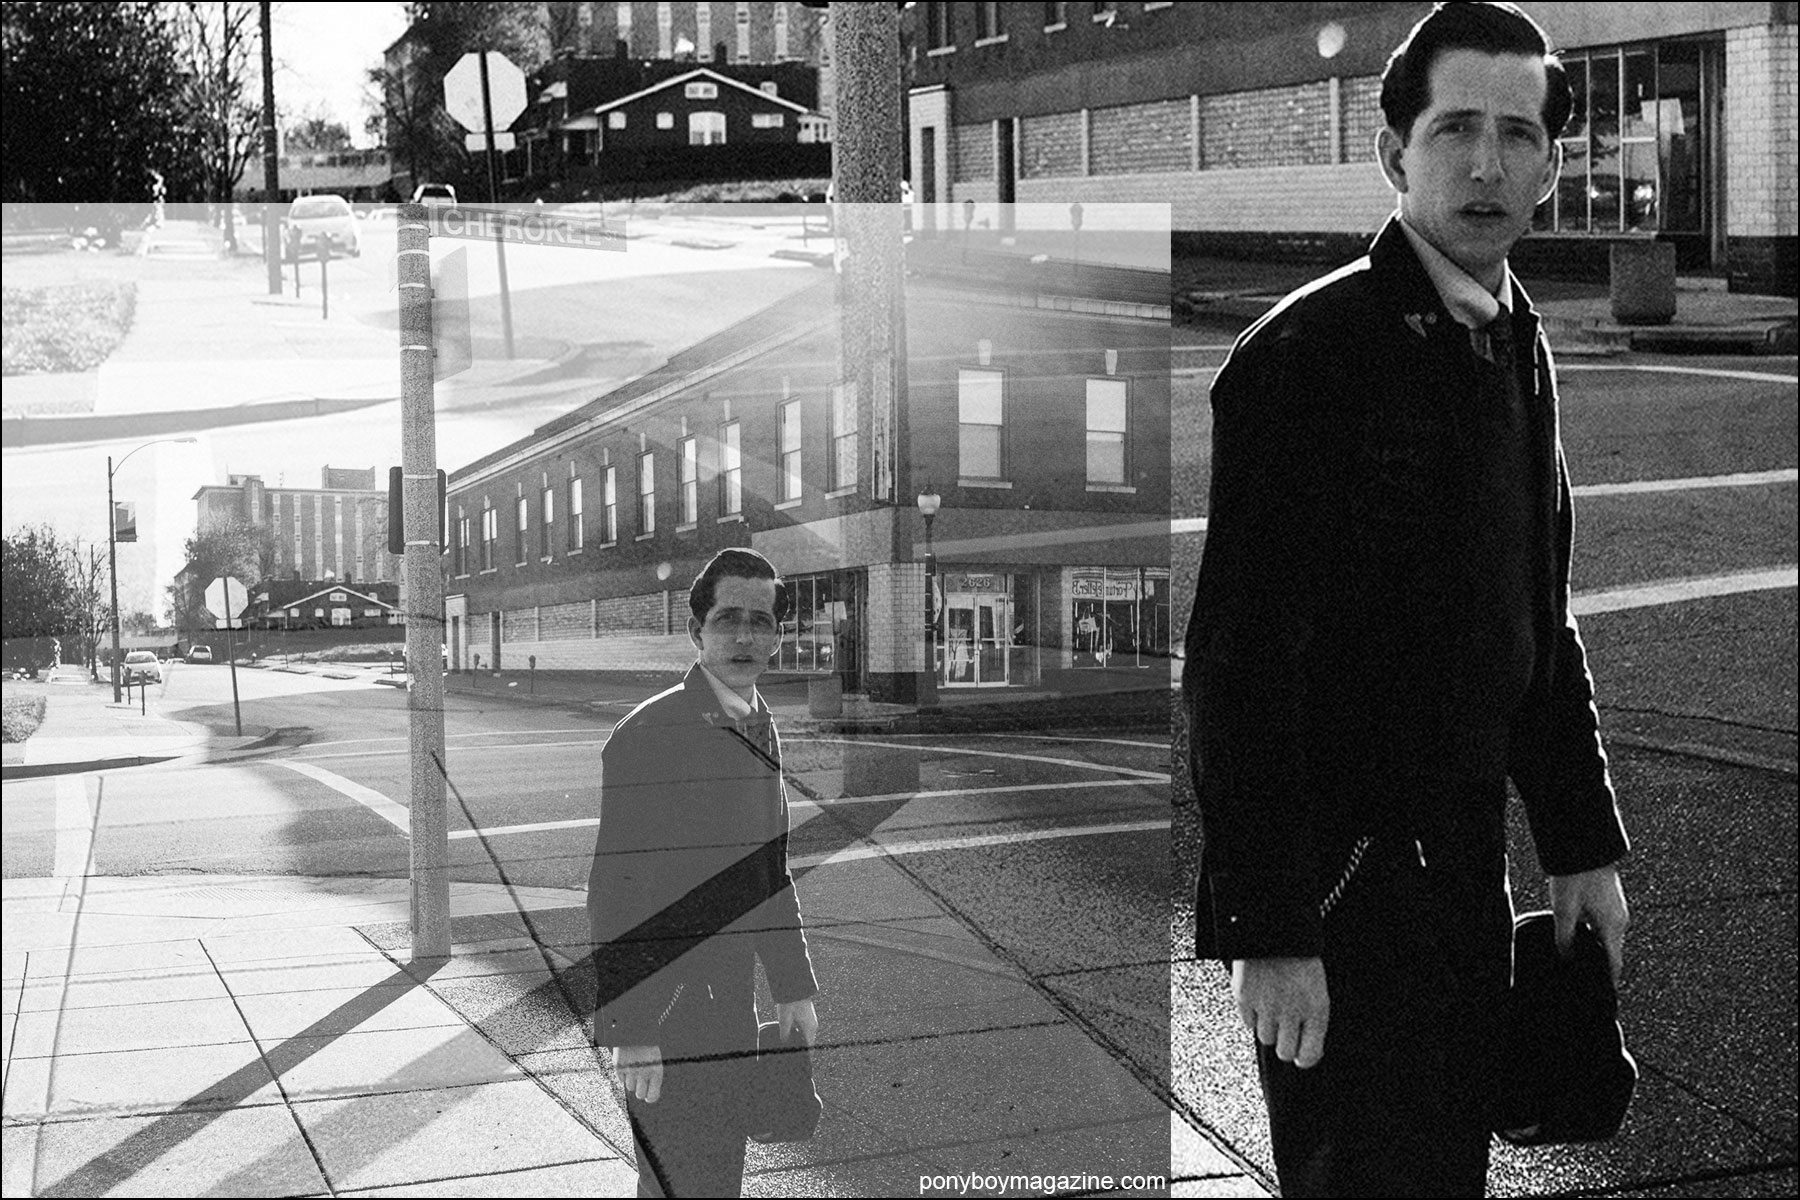 Black and white photographs of musician Pokey LaFarge by Joshua Black Wilkins. Ponyboy magazine NY.